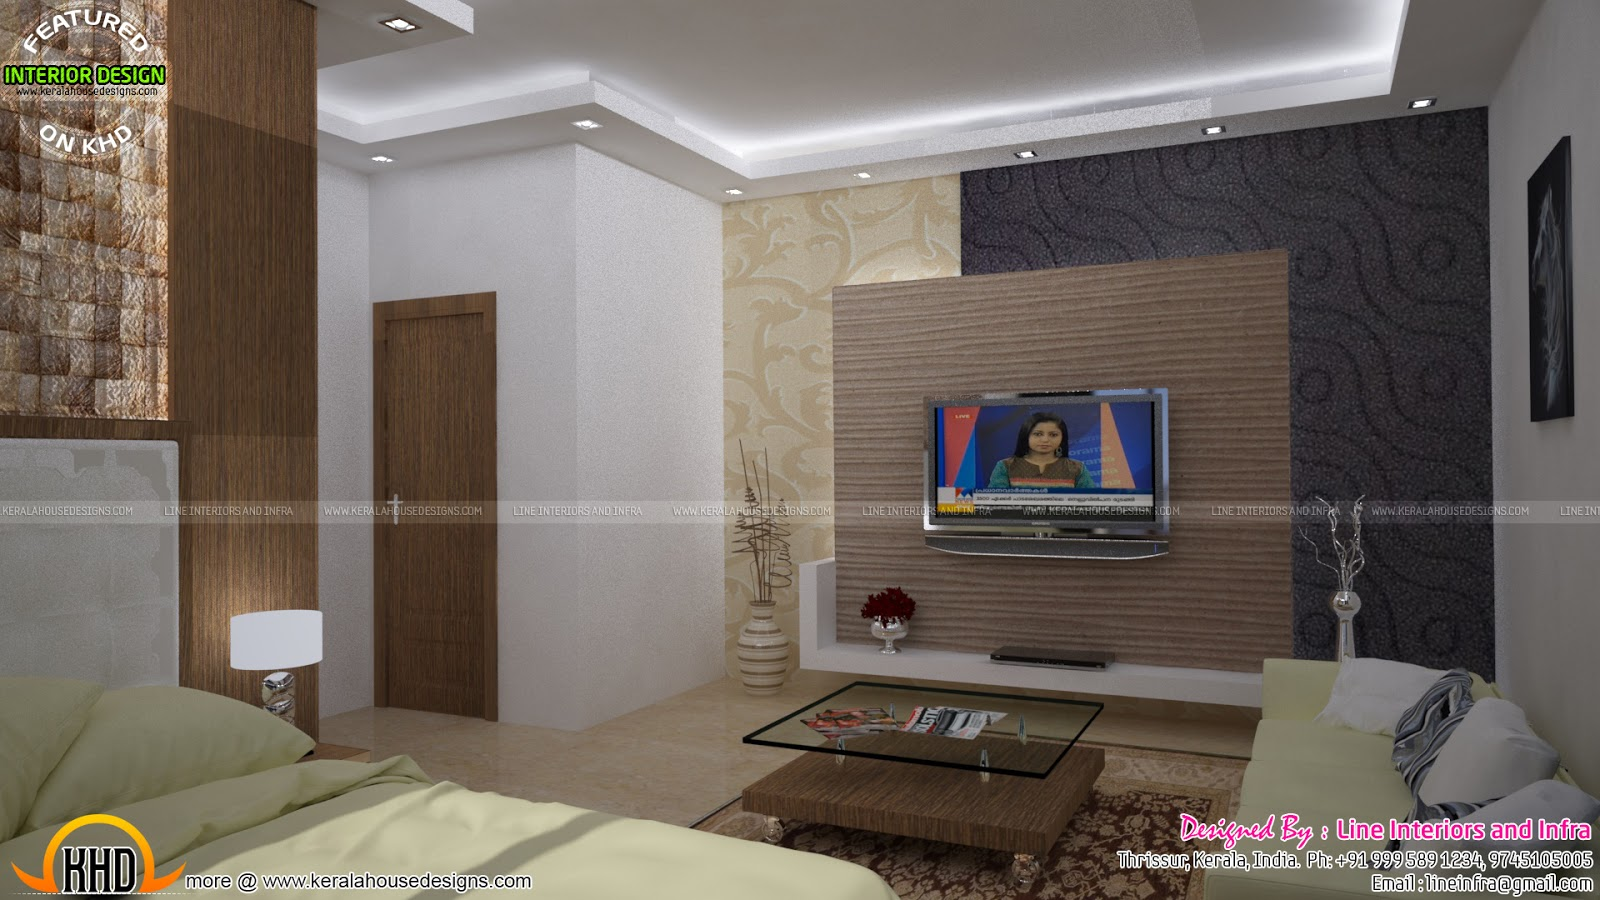 Floor plan of modern 3 bedroom house keralahousedesigns for Bedroom ideas tv